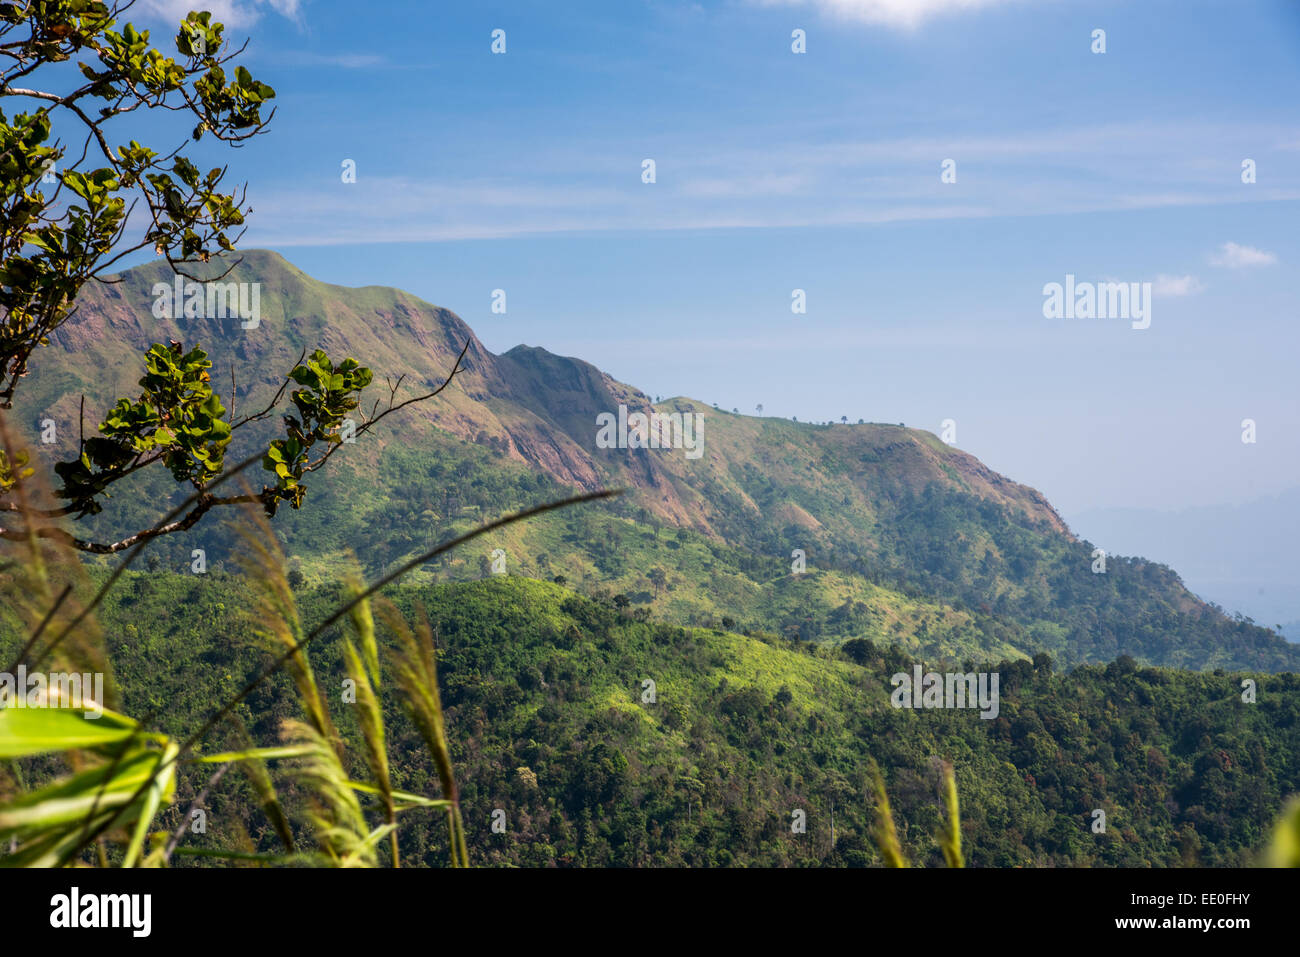 The long mountain - Stock Image